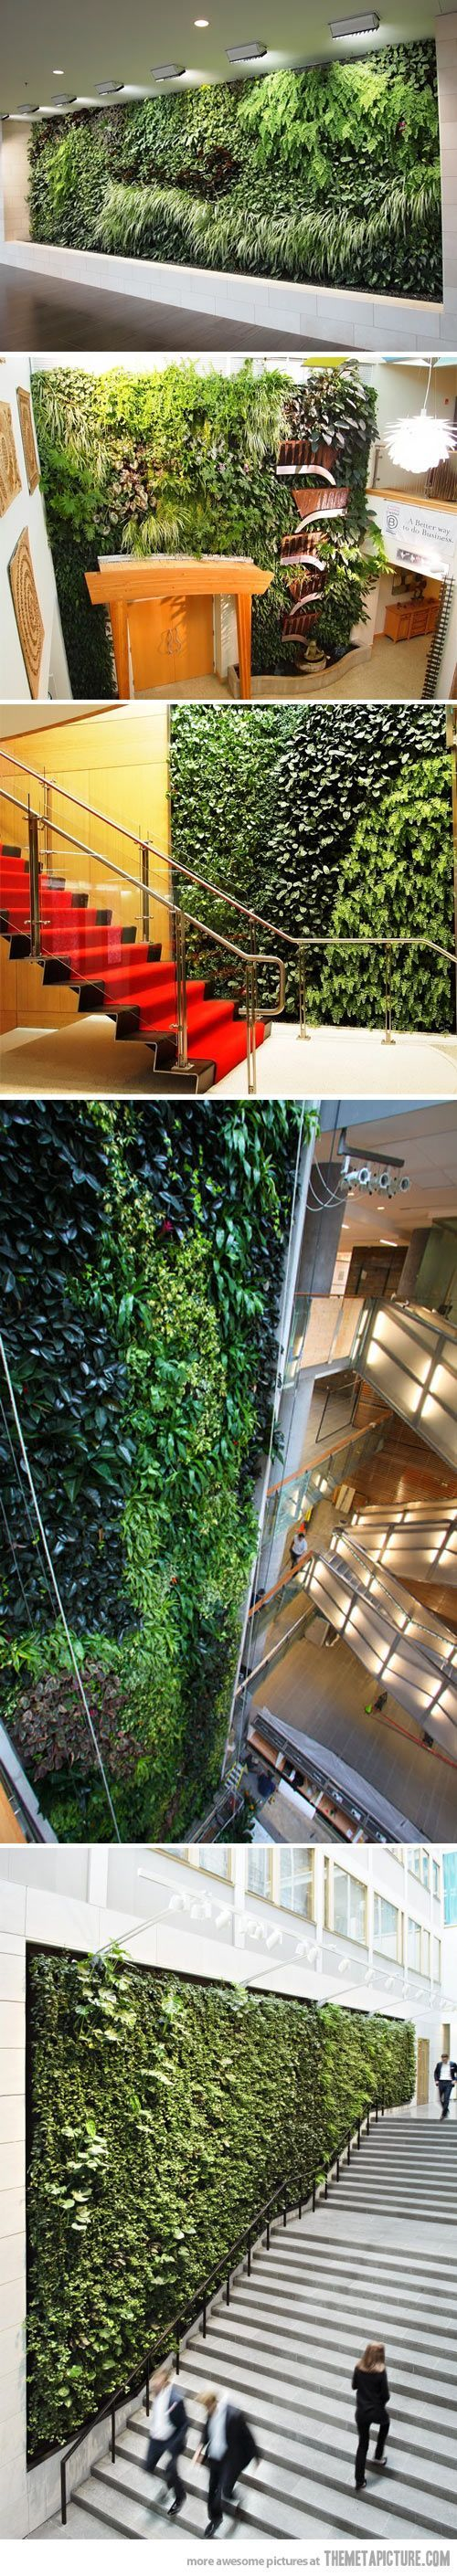 Livewall green wall system make conferences more comfortable - Livewall Green Wall System Make Conferences More Comfortable Living Walls Art Download